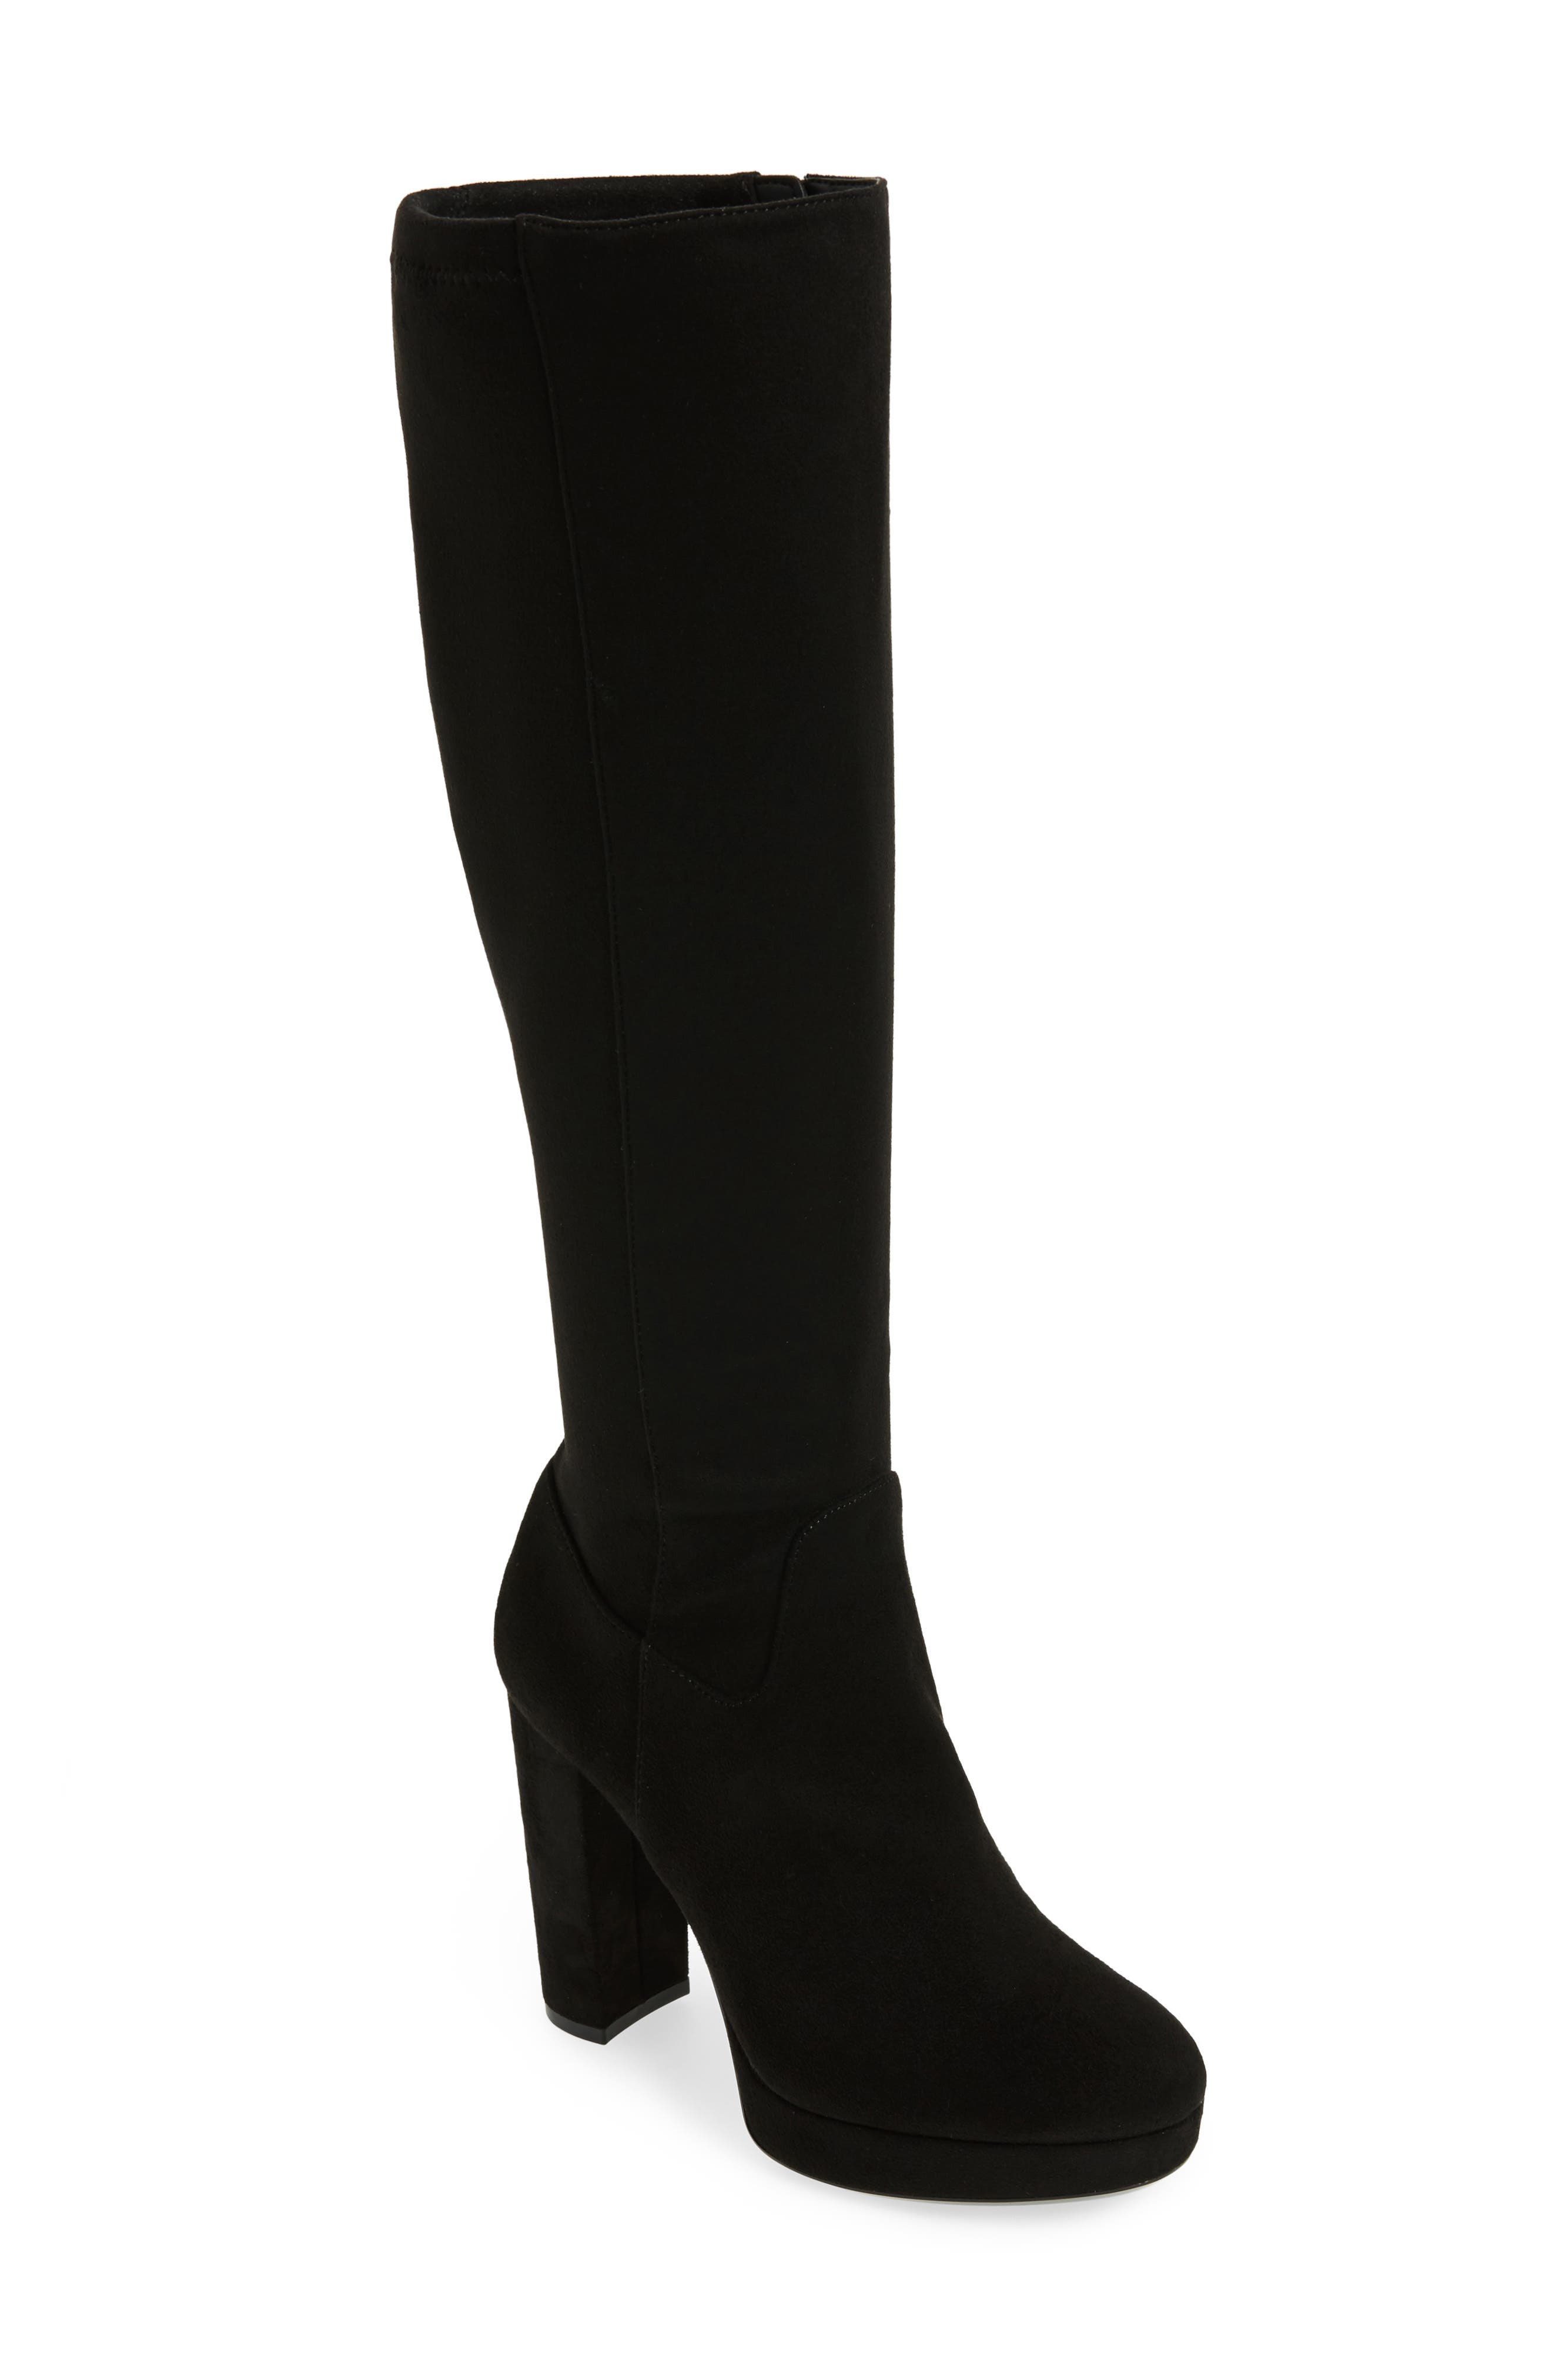 Mailia Tall Boot,                         Main,                         color, Black Suede